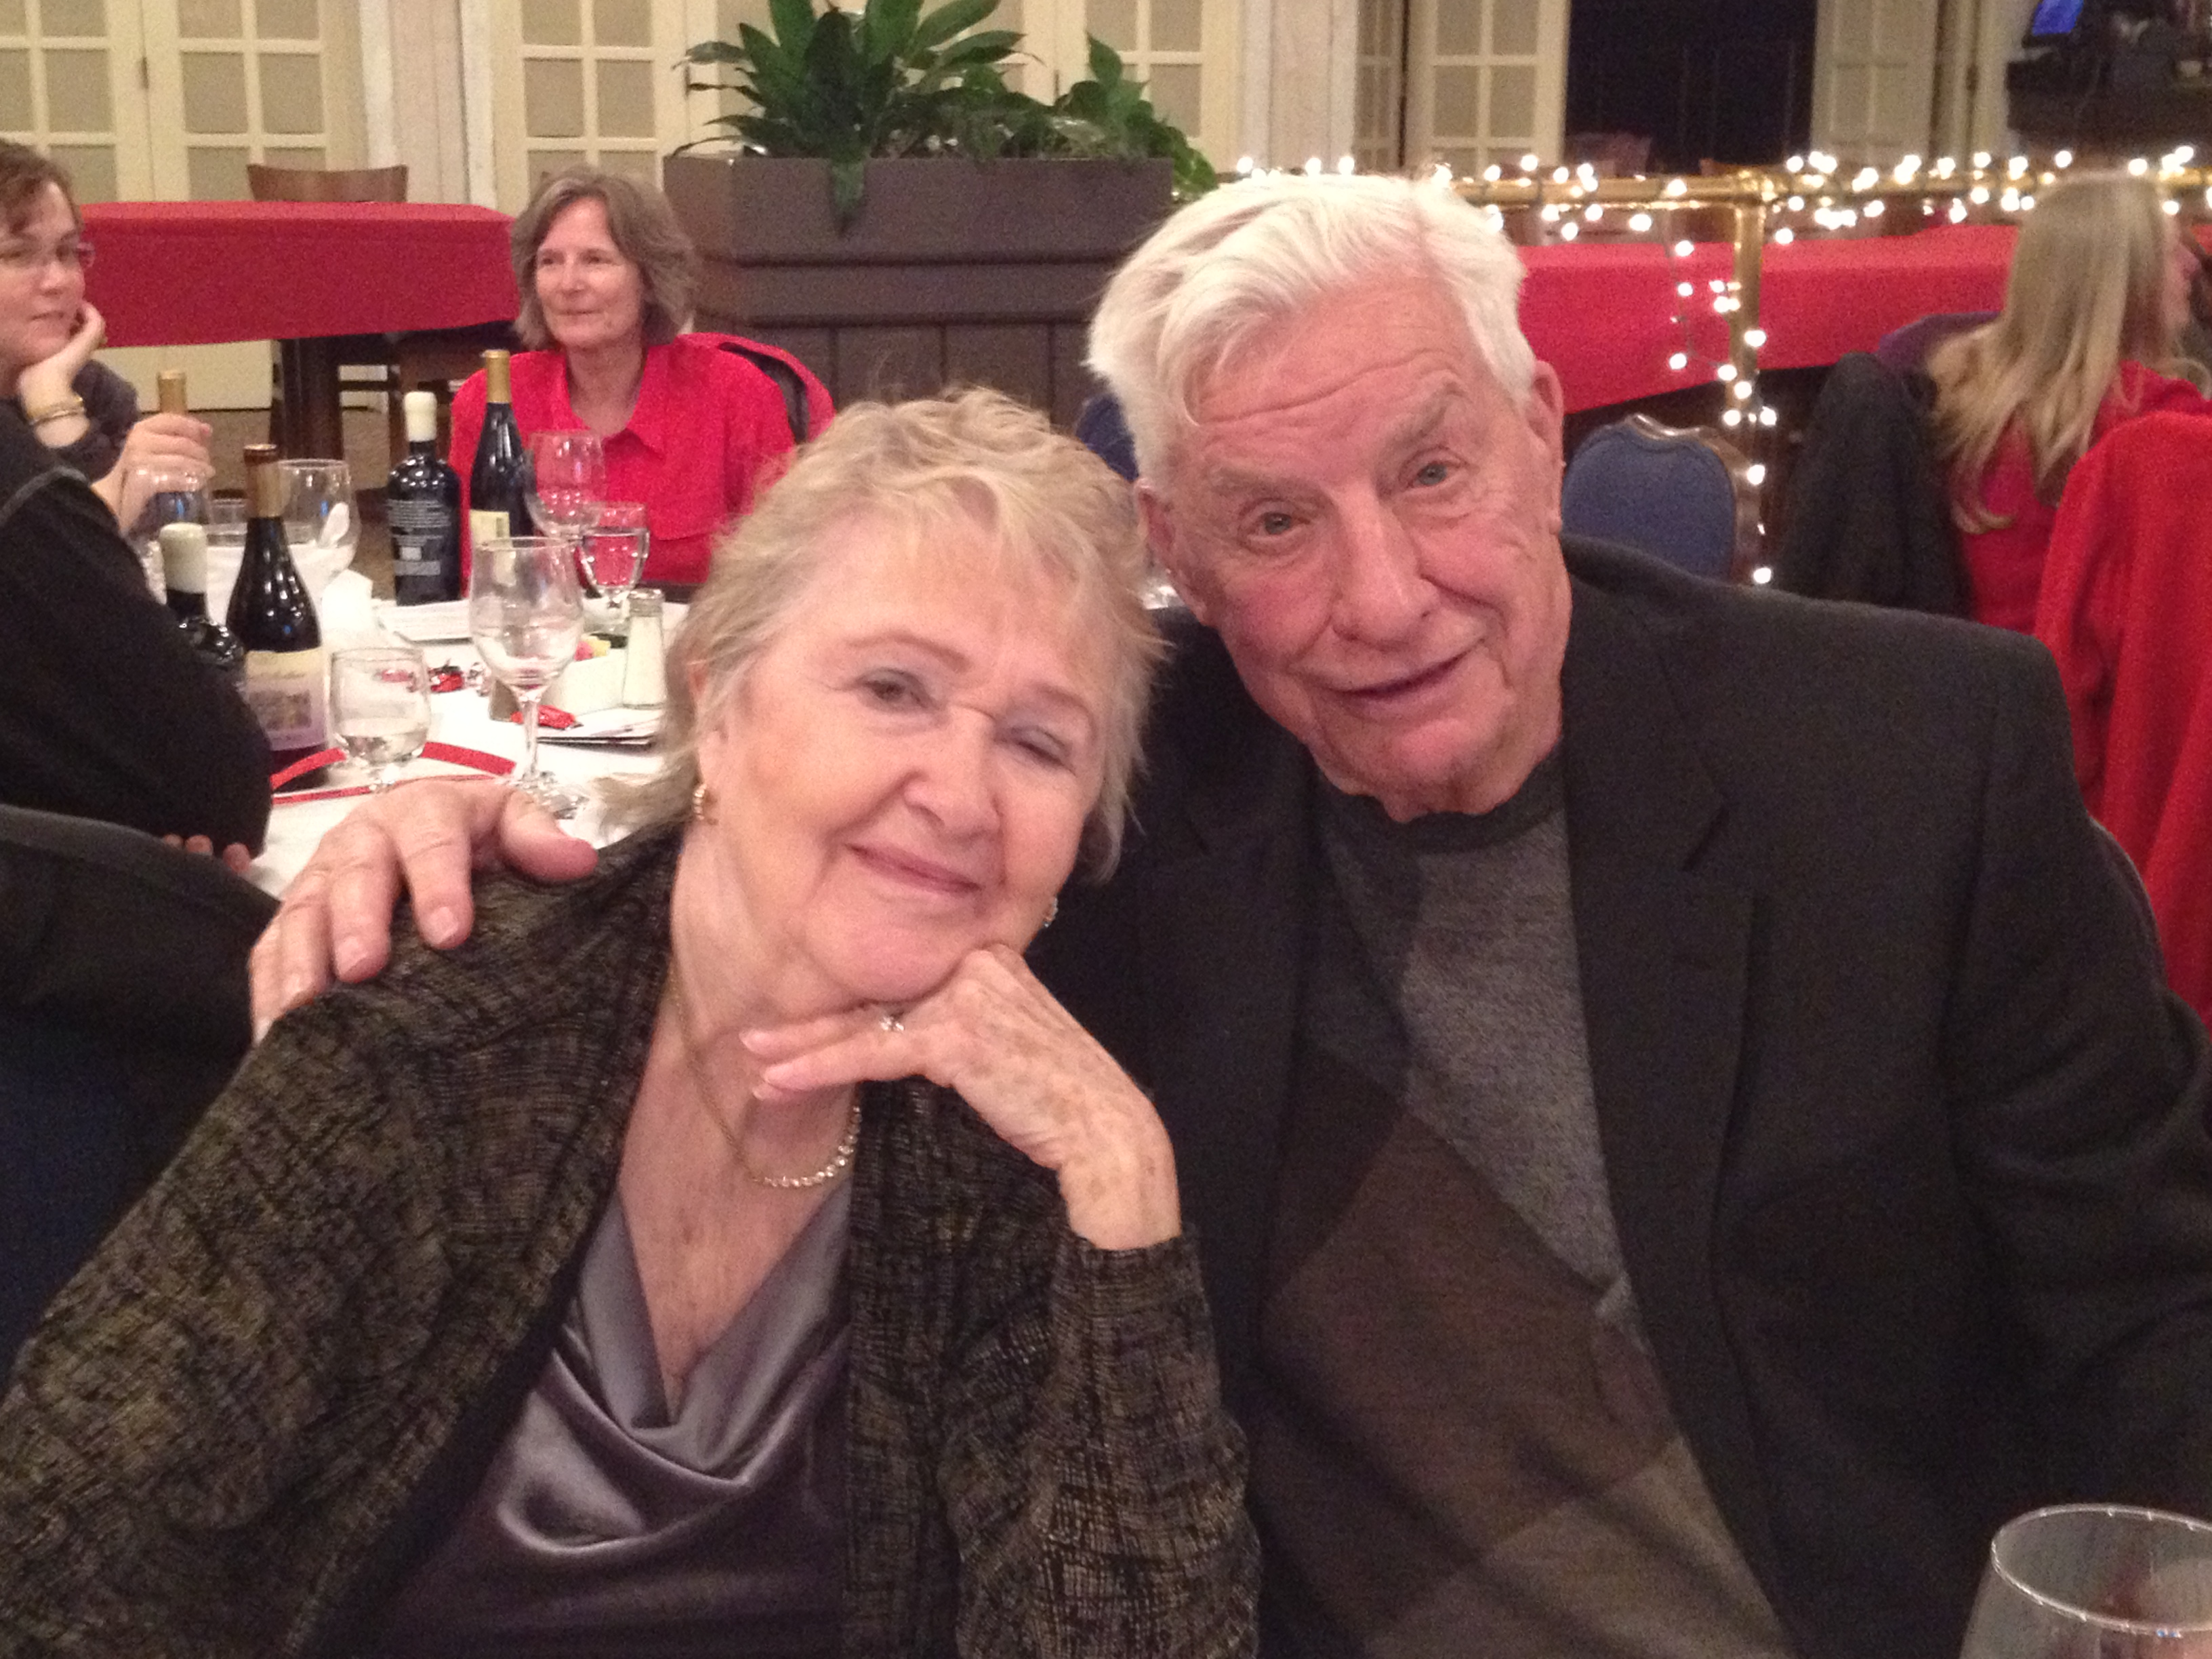 Del Weigand (former Husker quarterback) and his wife